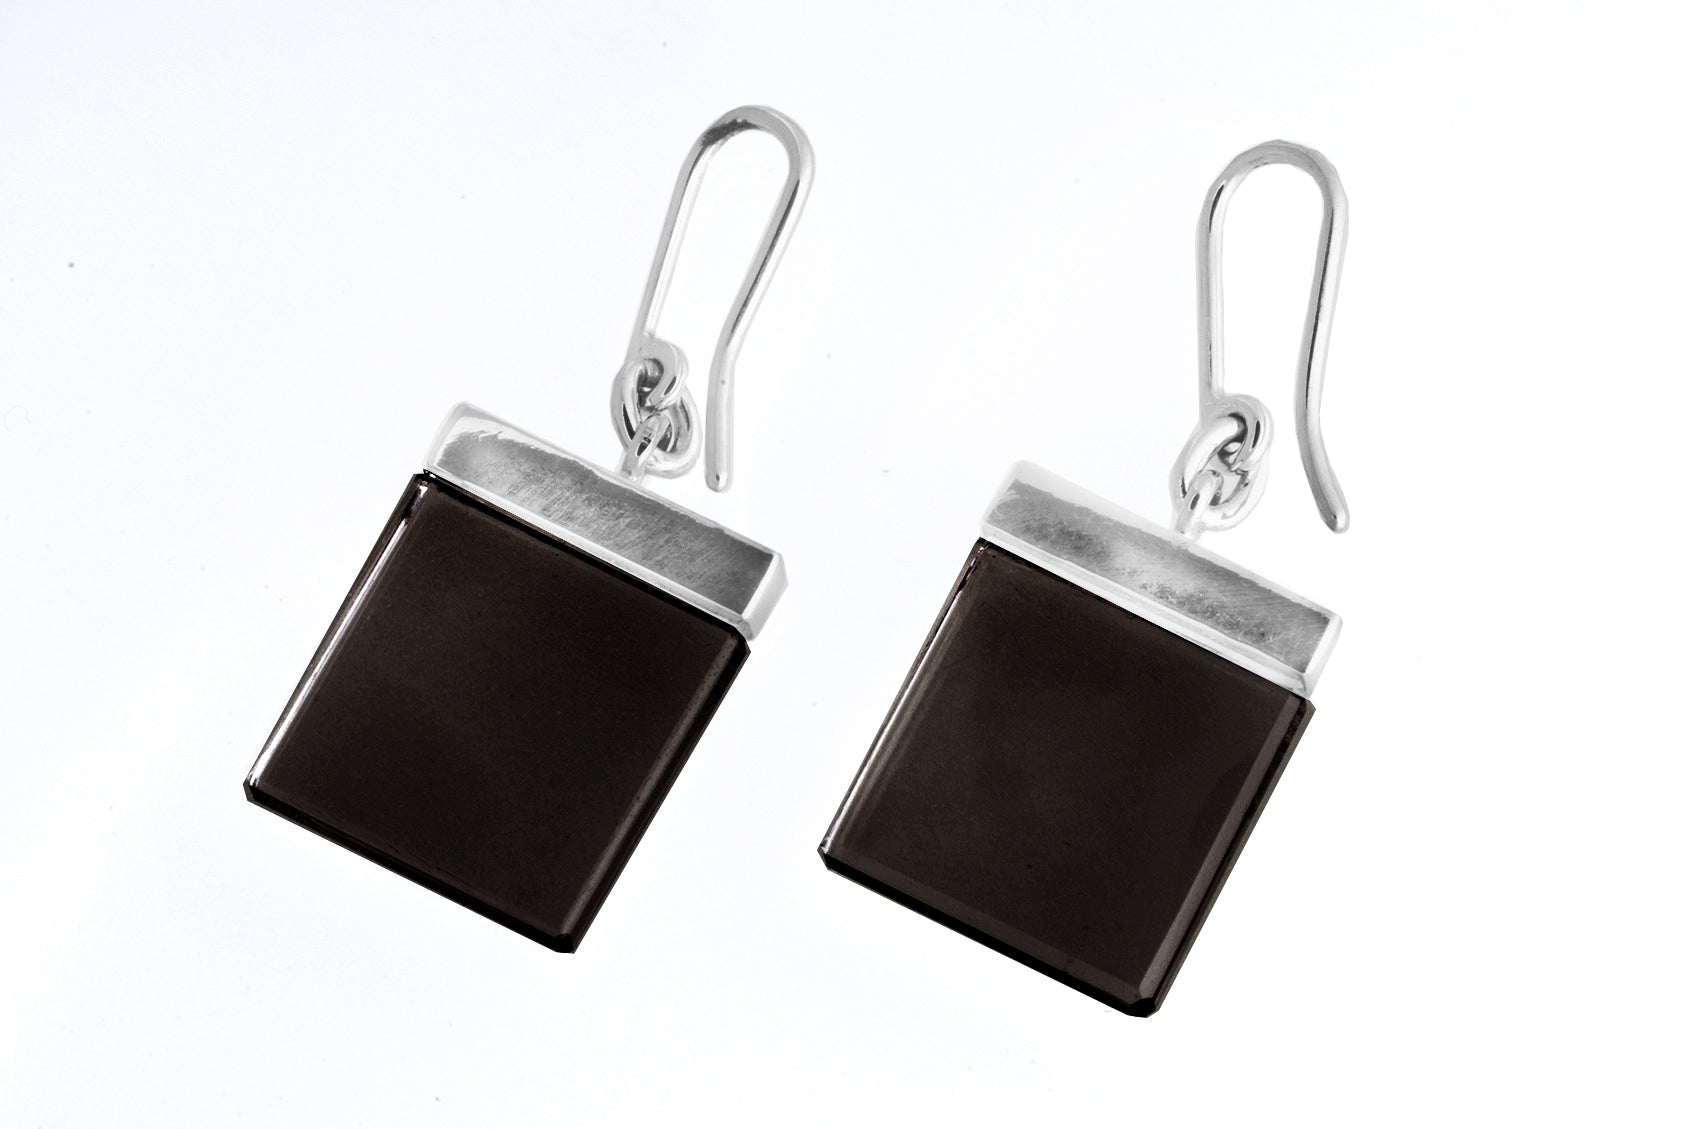 18 Karat White Gold Contemporary Ink Earrings by Artist with Dark Smoky Quartz